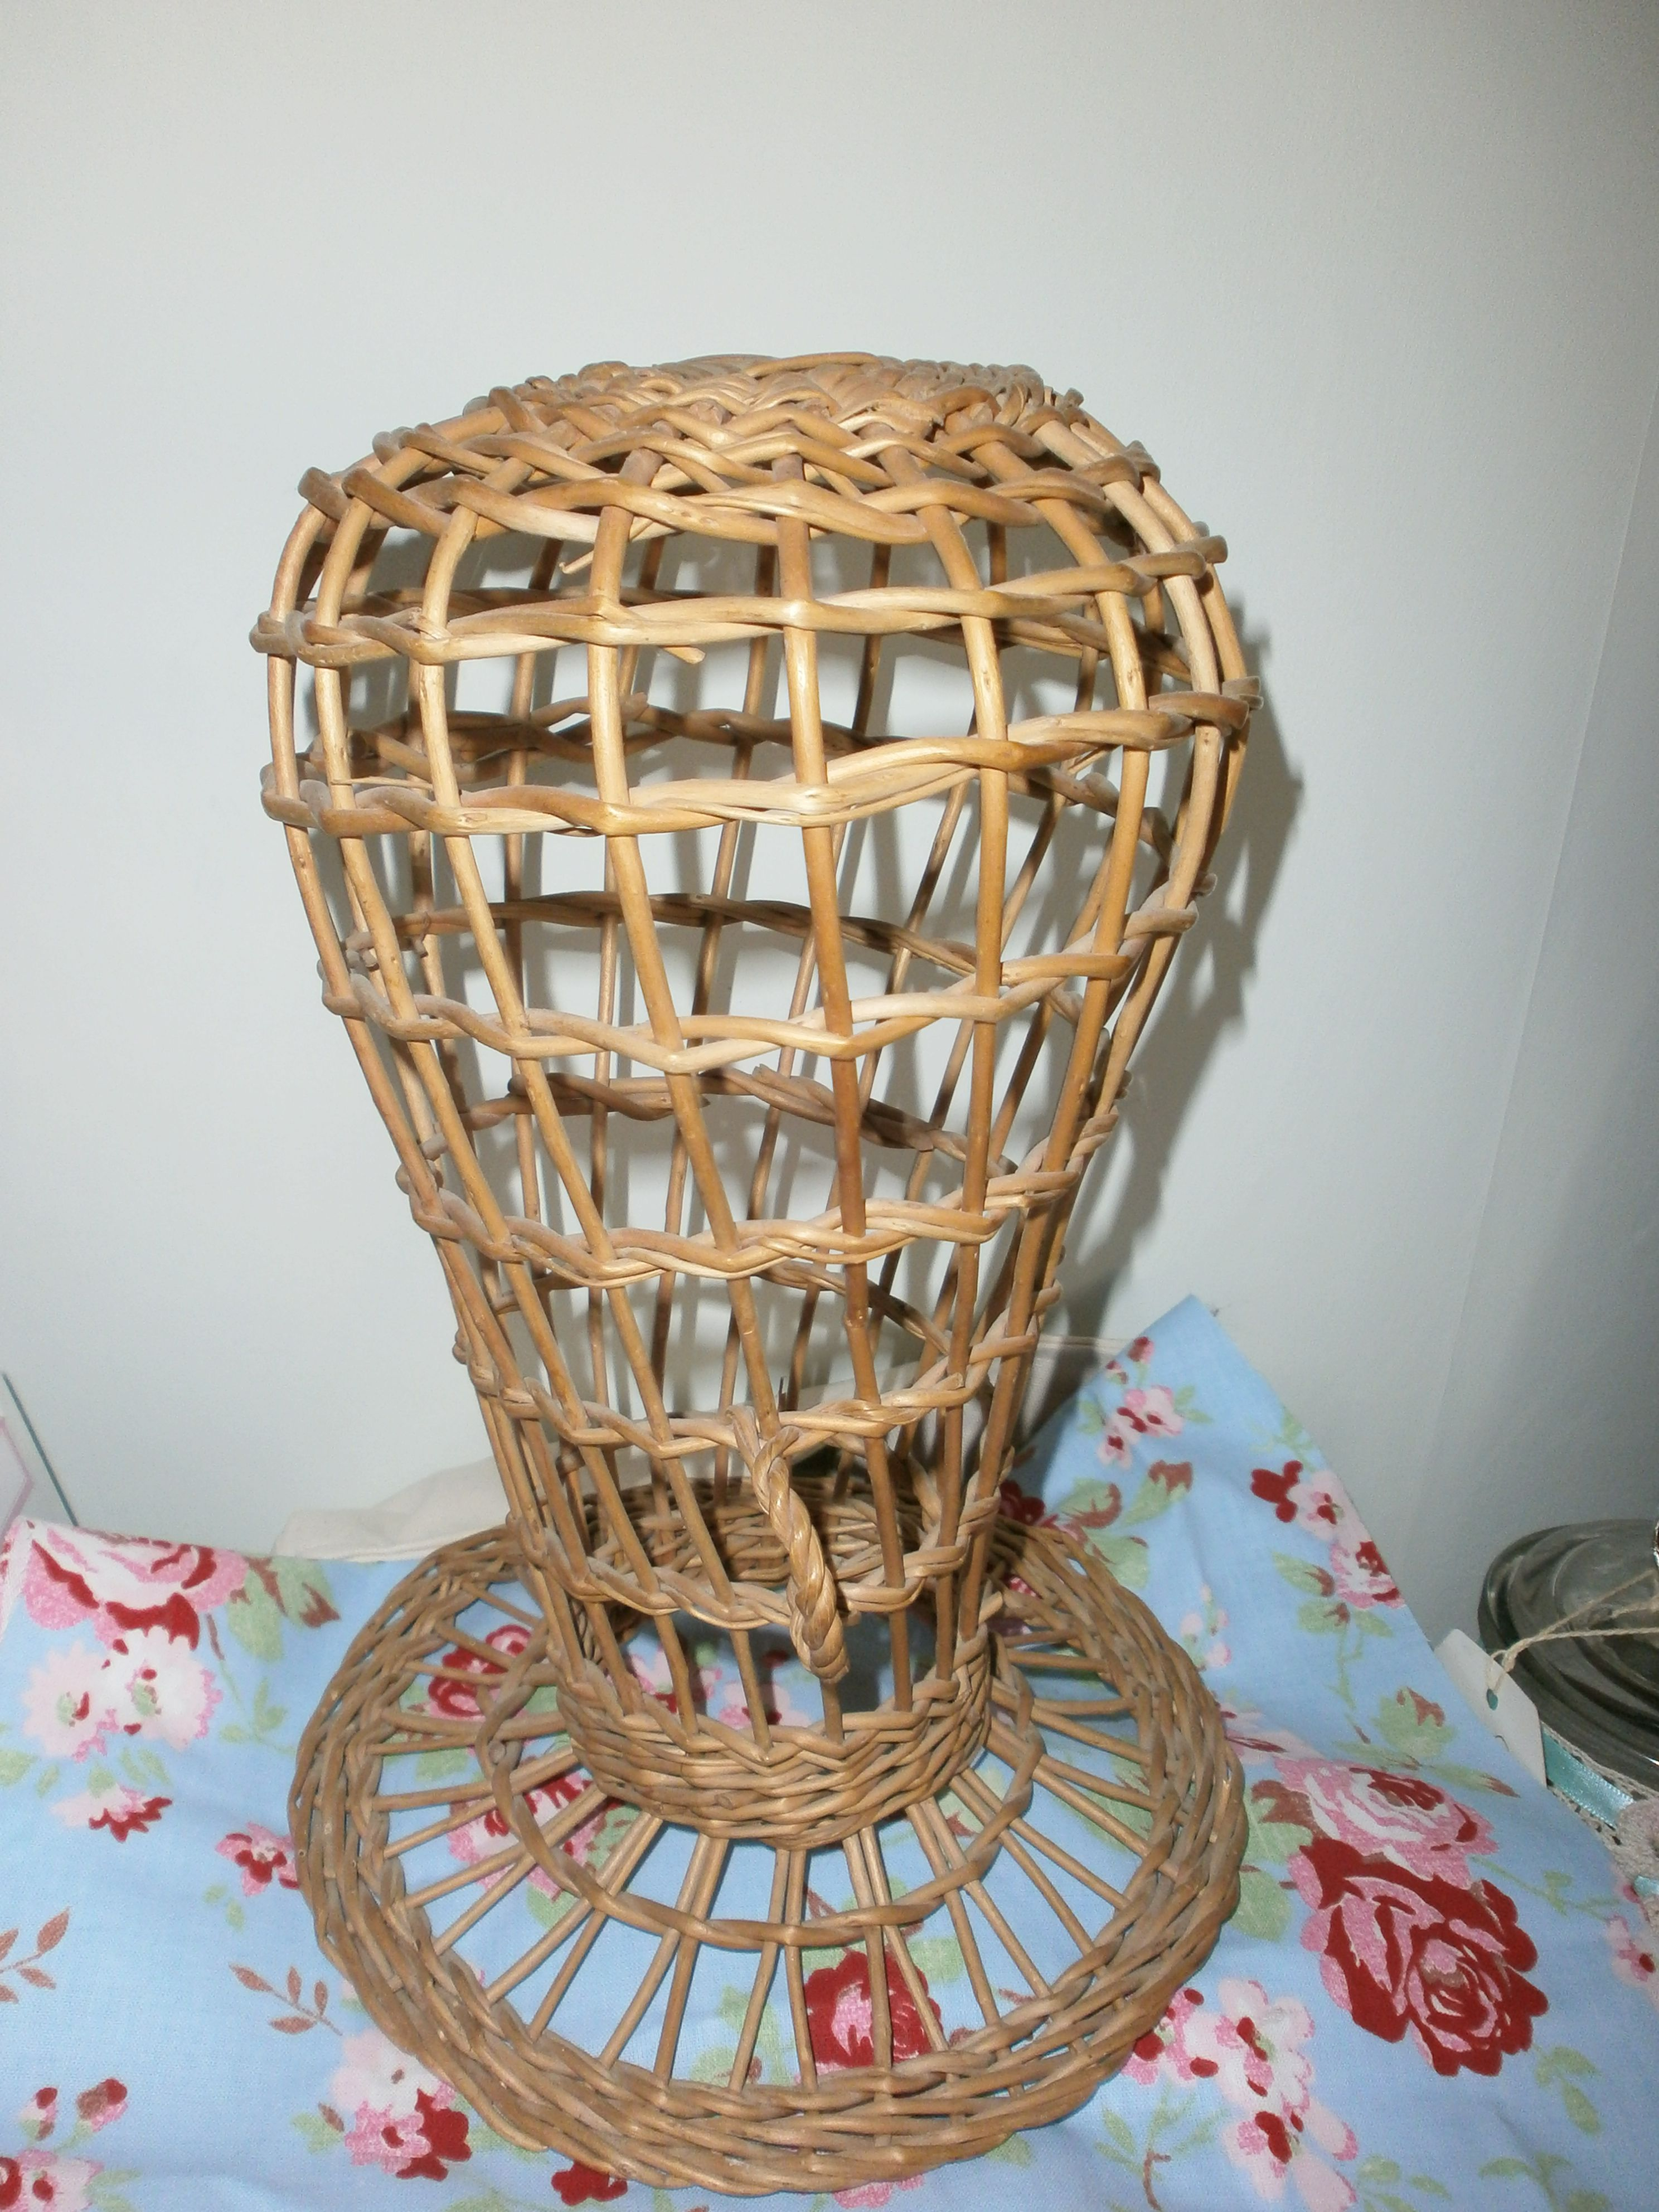 french hat stand | DIY CRAFT SHOW DISPLAY AND SET-UP IDEAS | Pinterest